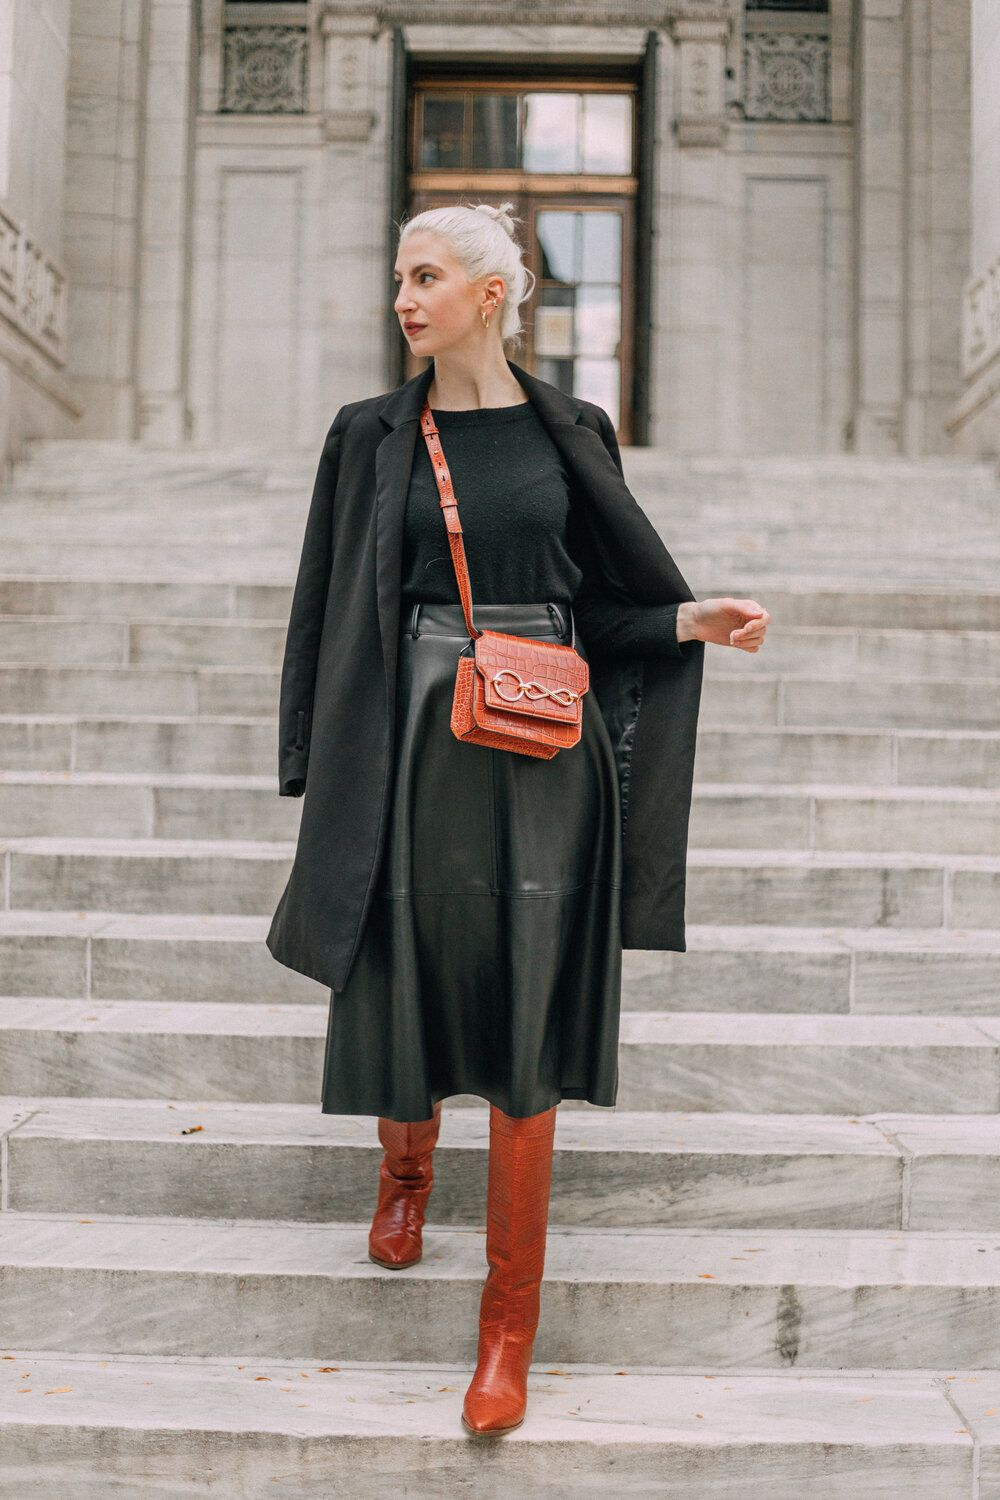 Midi Skirts & Boots in 2020 | Winter dress outfits, Chic